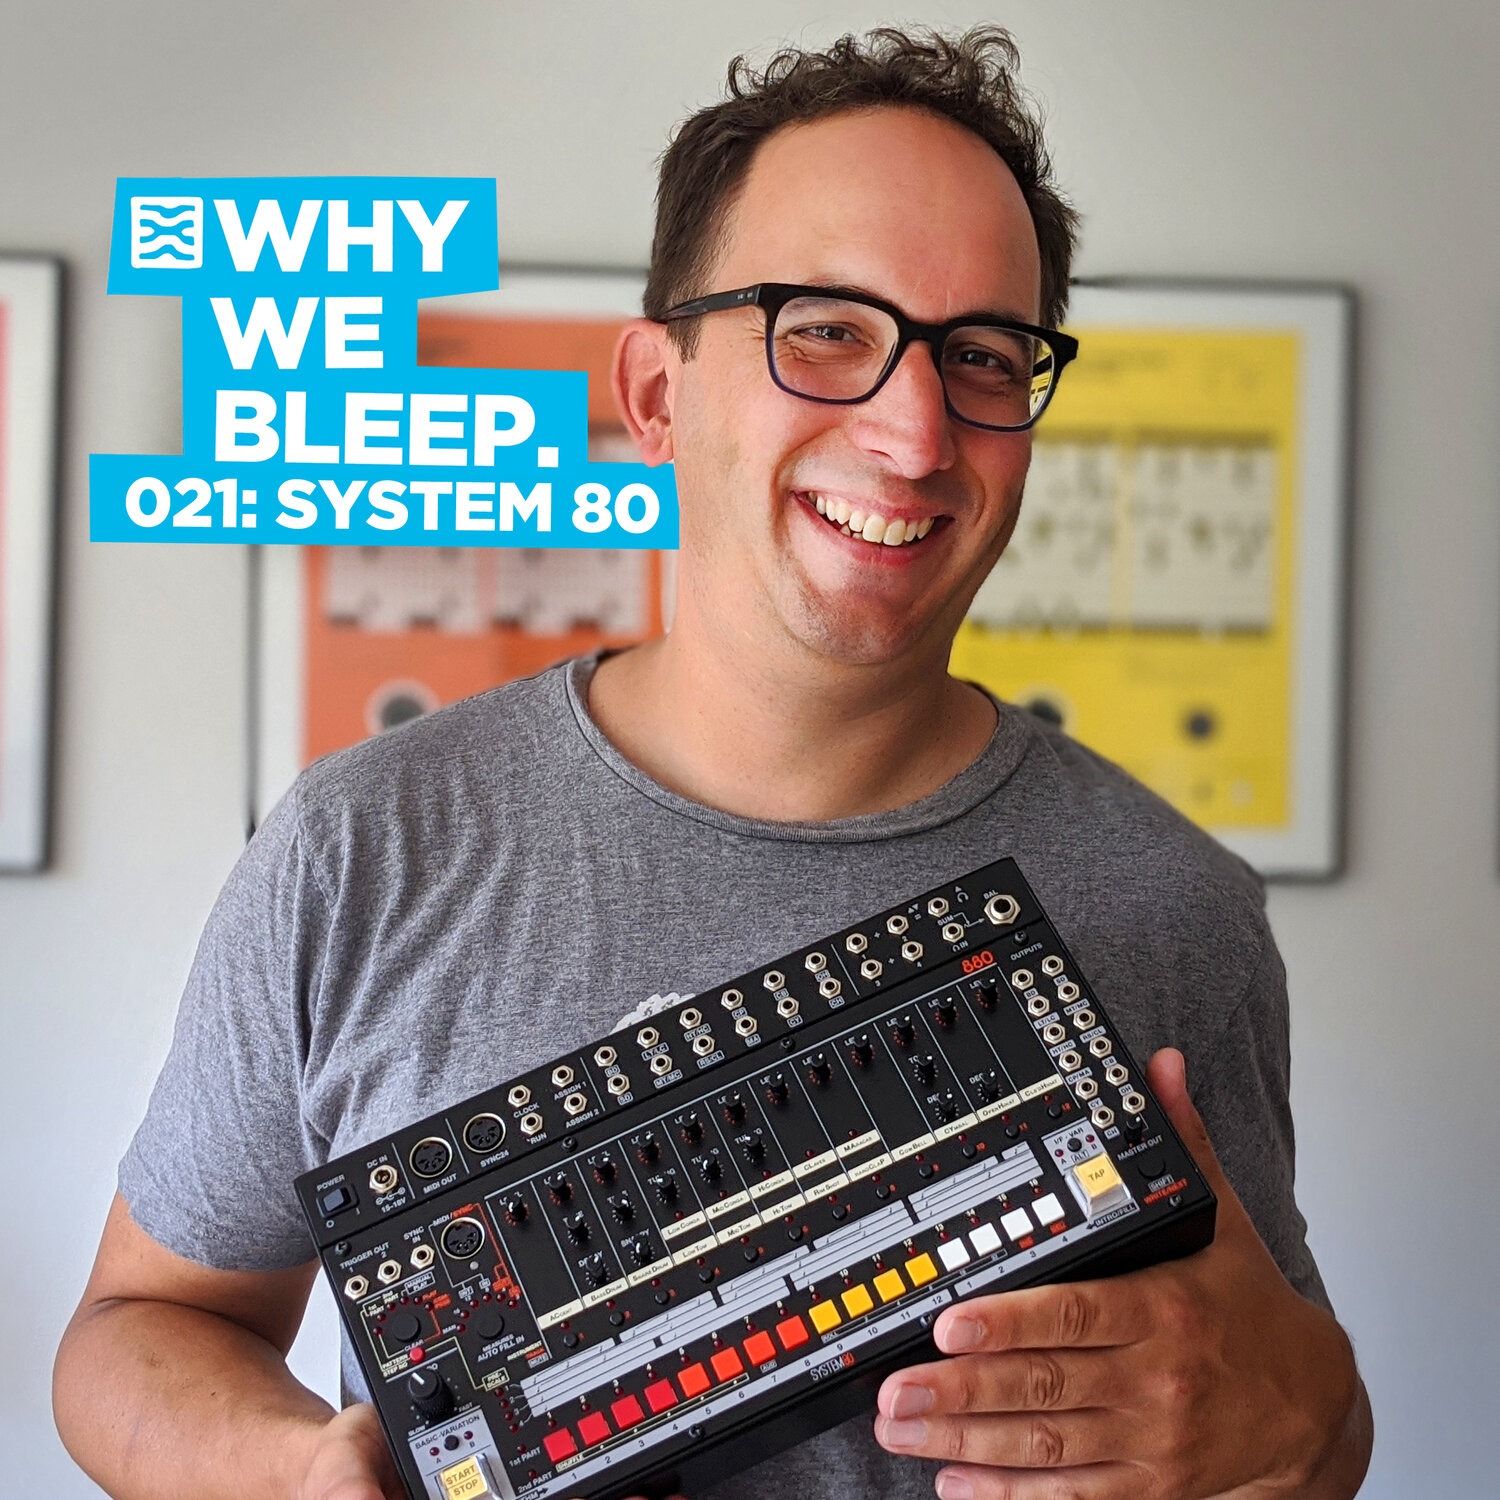 Why We Bleep 021: System 80